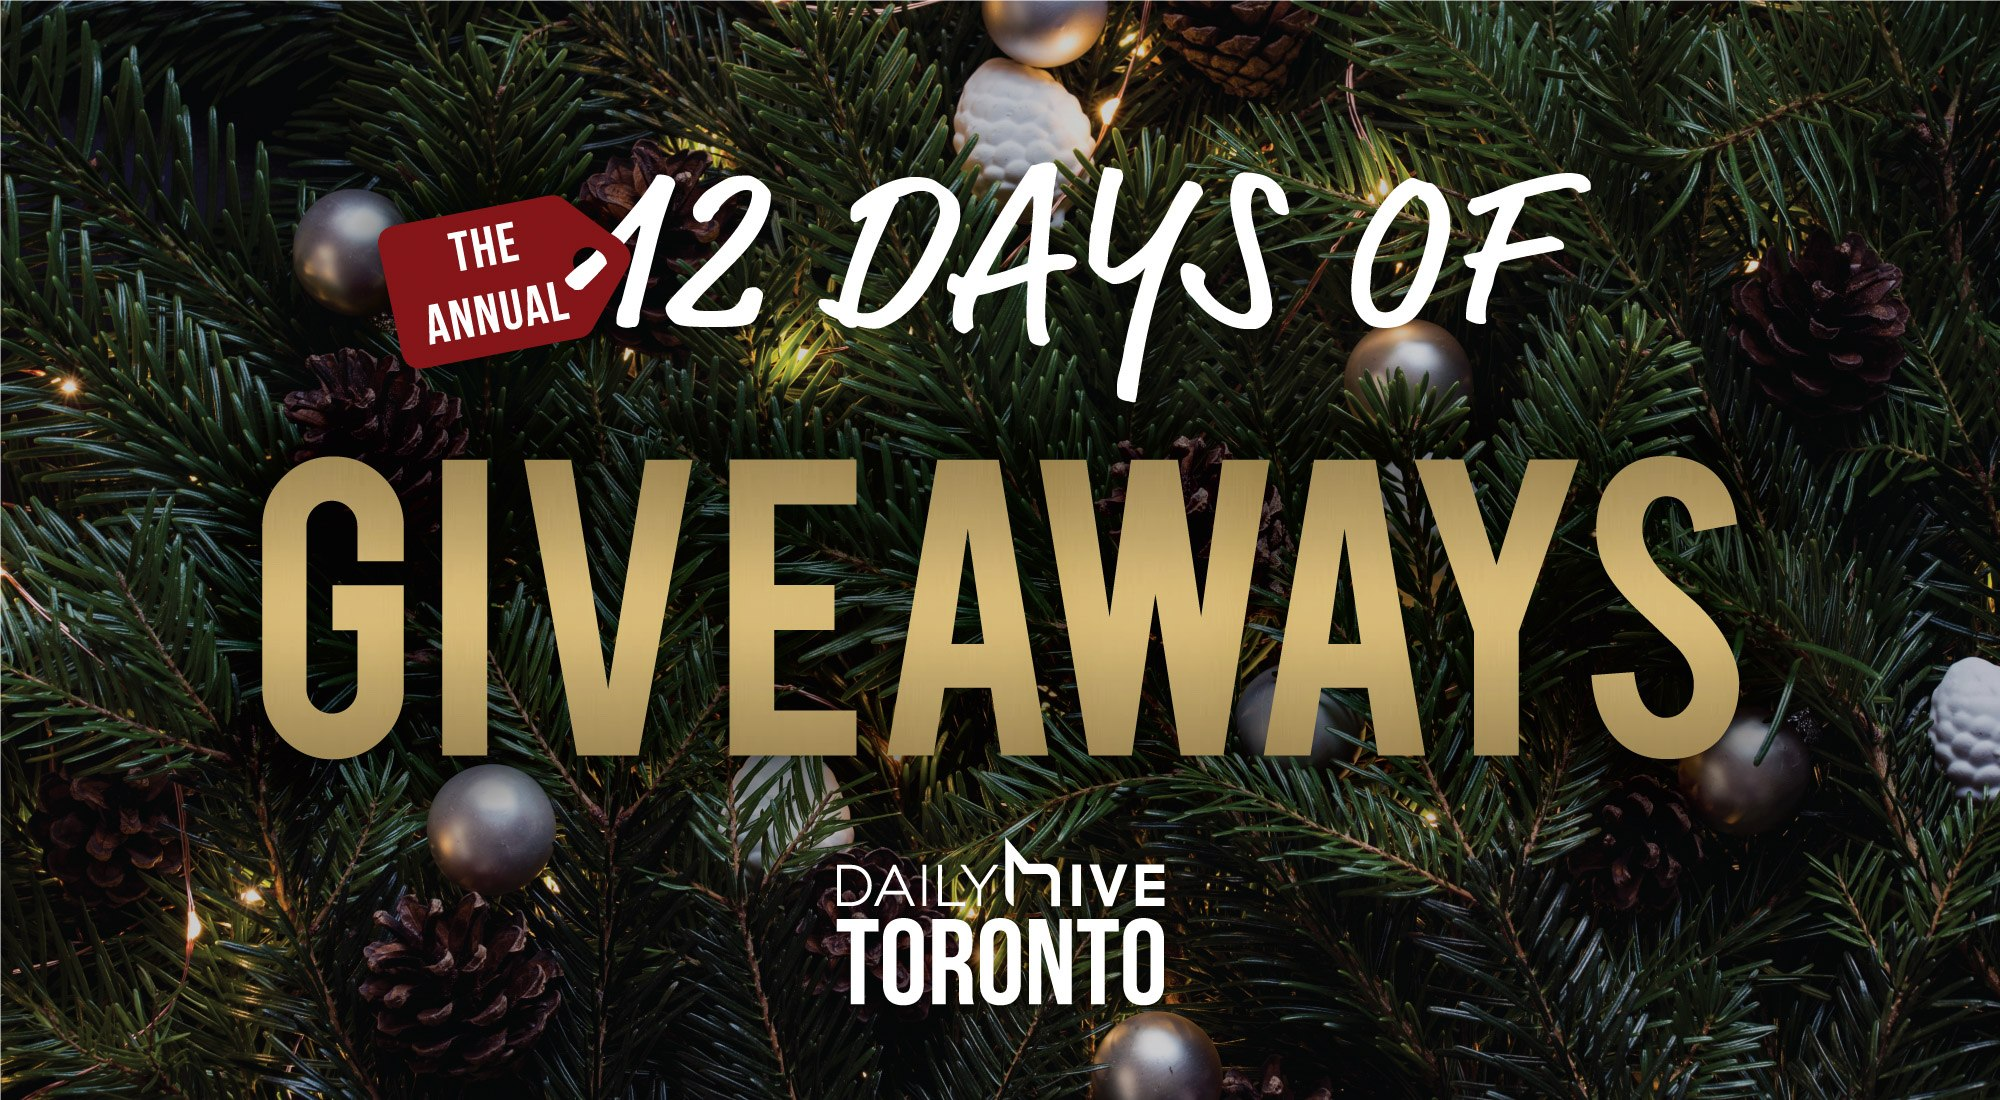 More than $32,000 in prizes in our first 12 Days of Giveaways